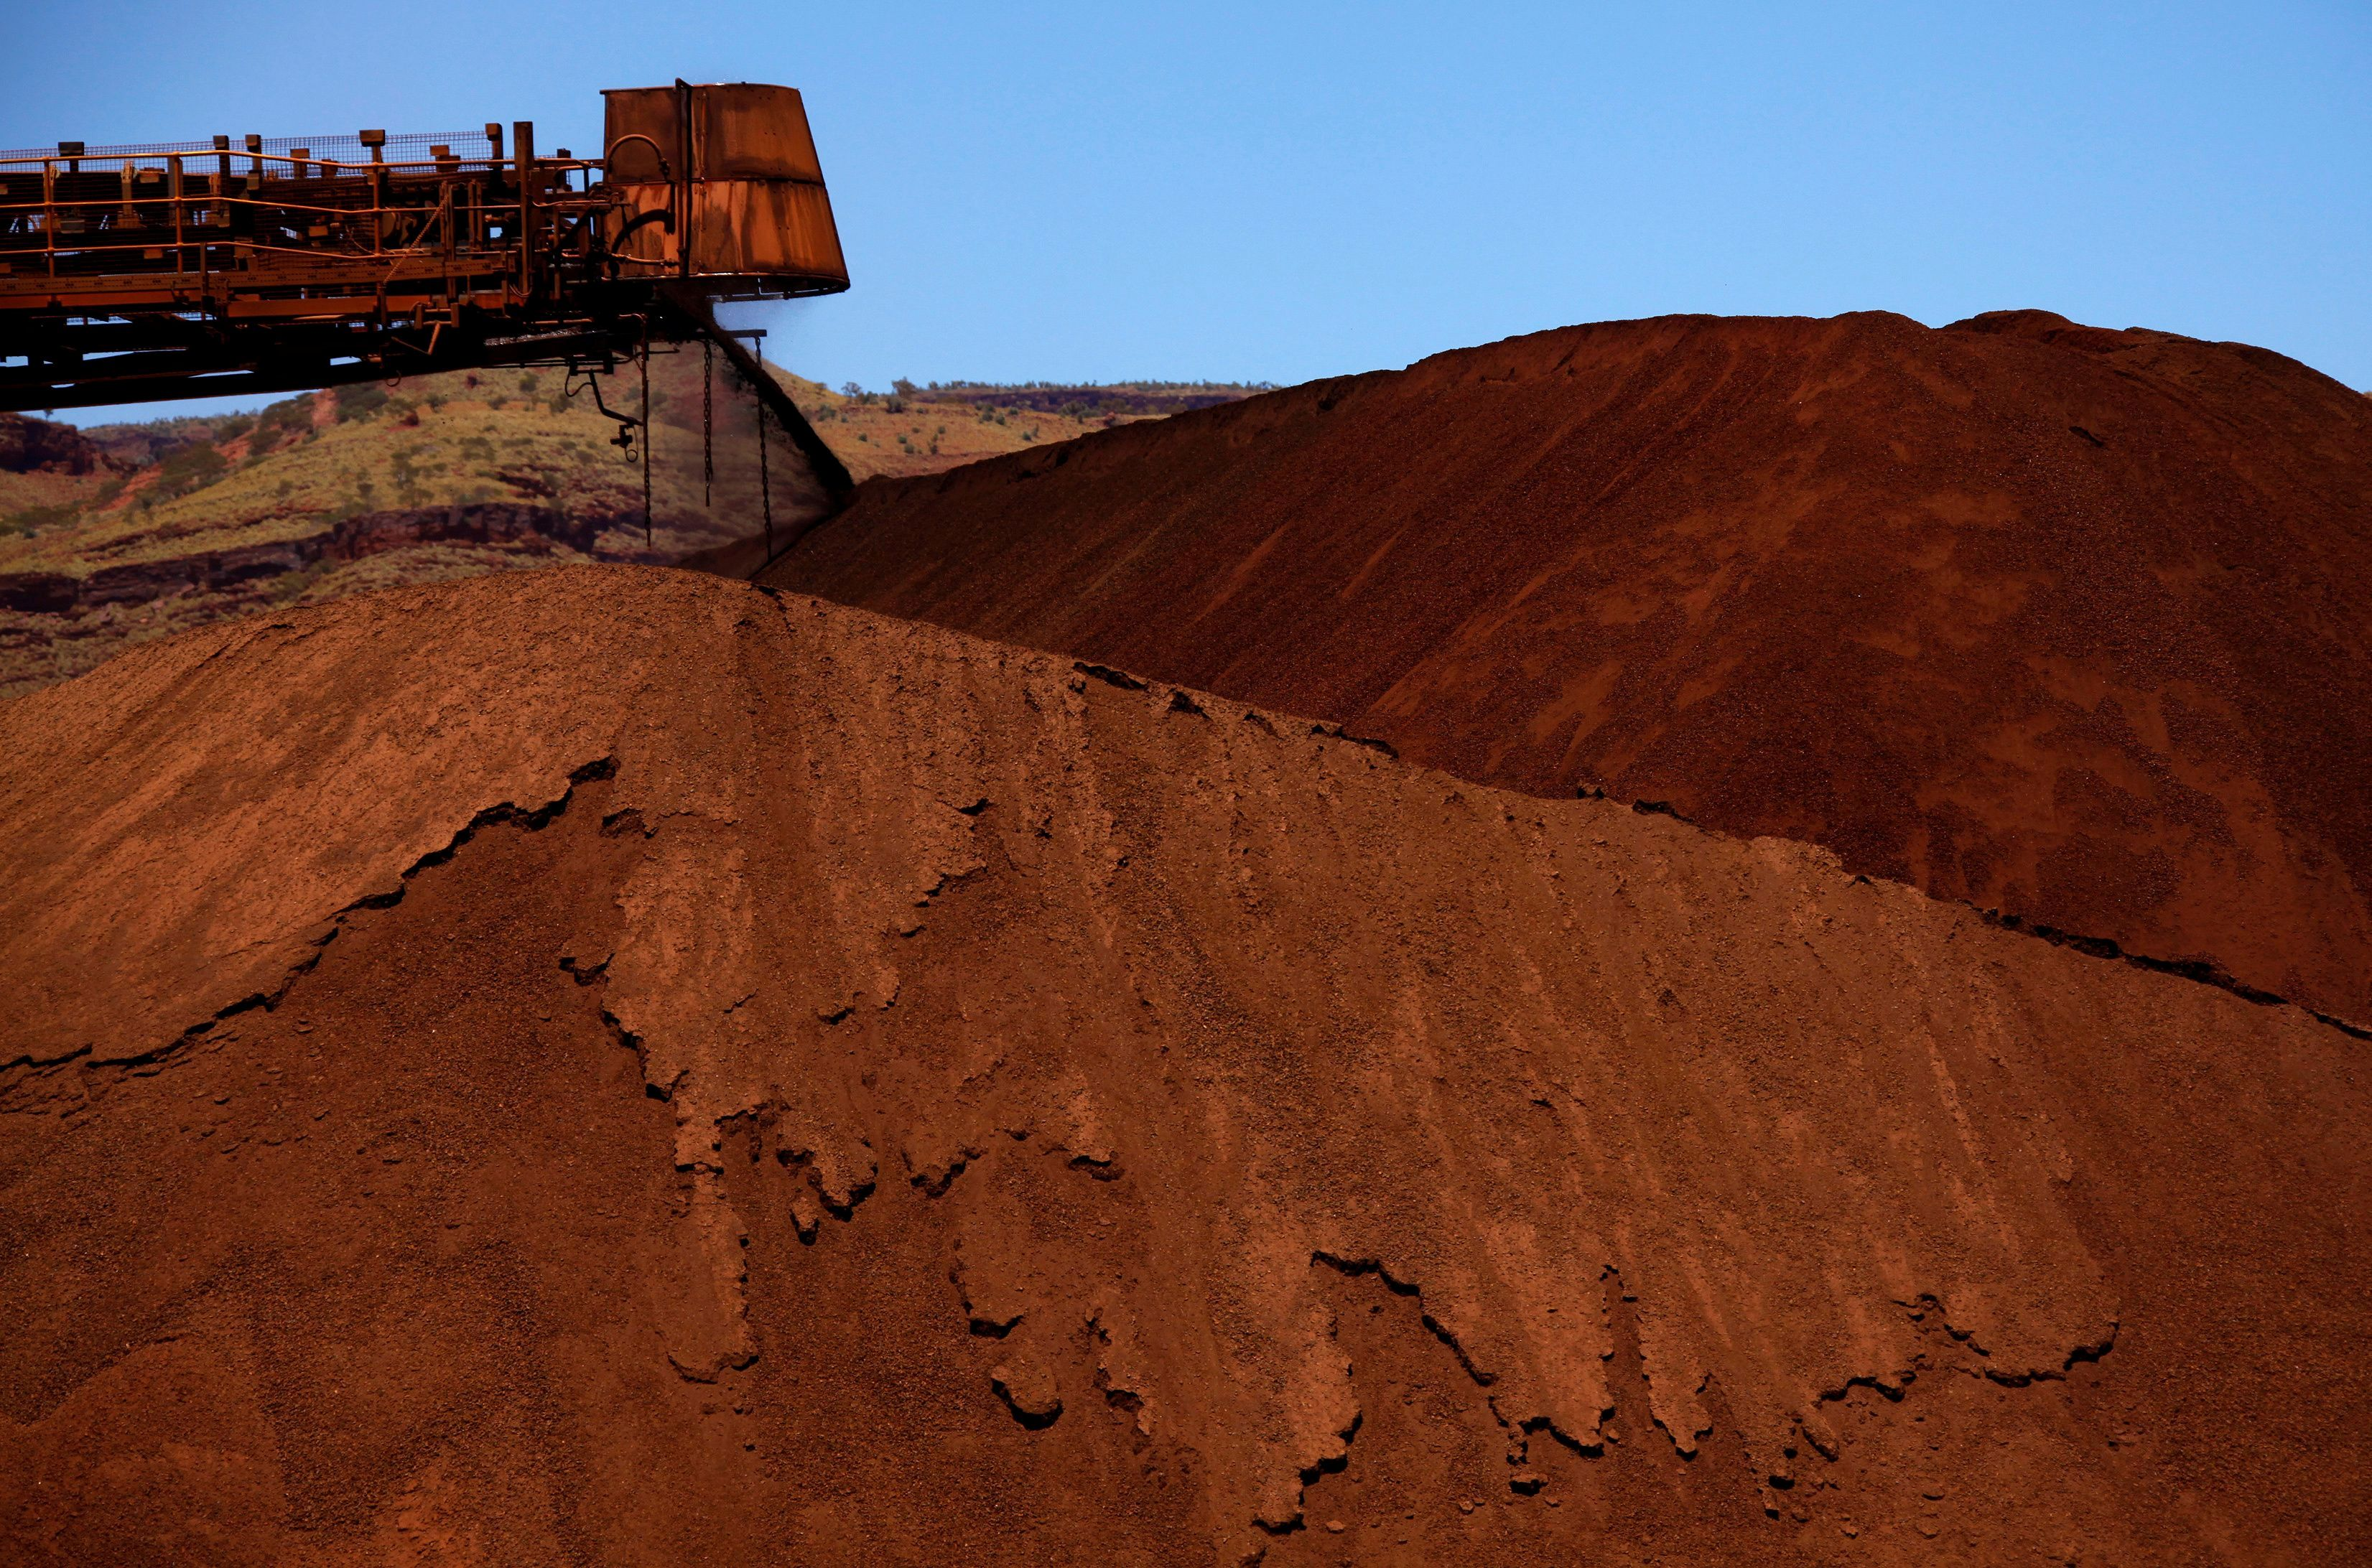 A stacker unloads iron ore onto a pile at a mine located in the Pilbara region of Western Australia December 2, 2013. REUTERS/David Gray/File Photo